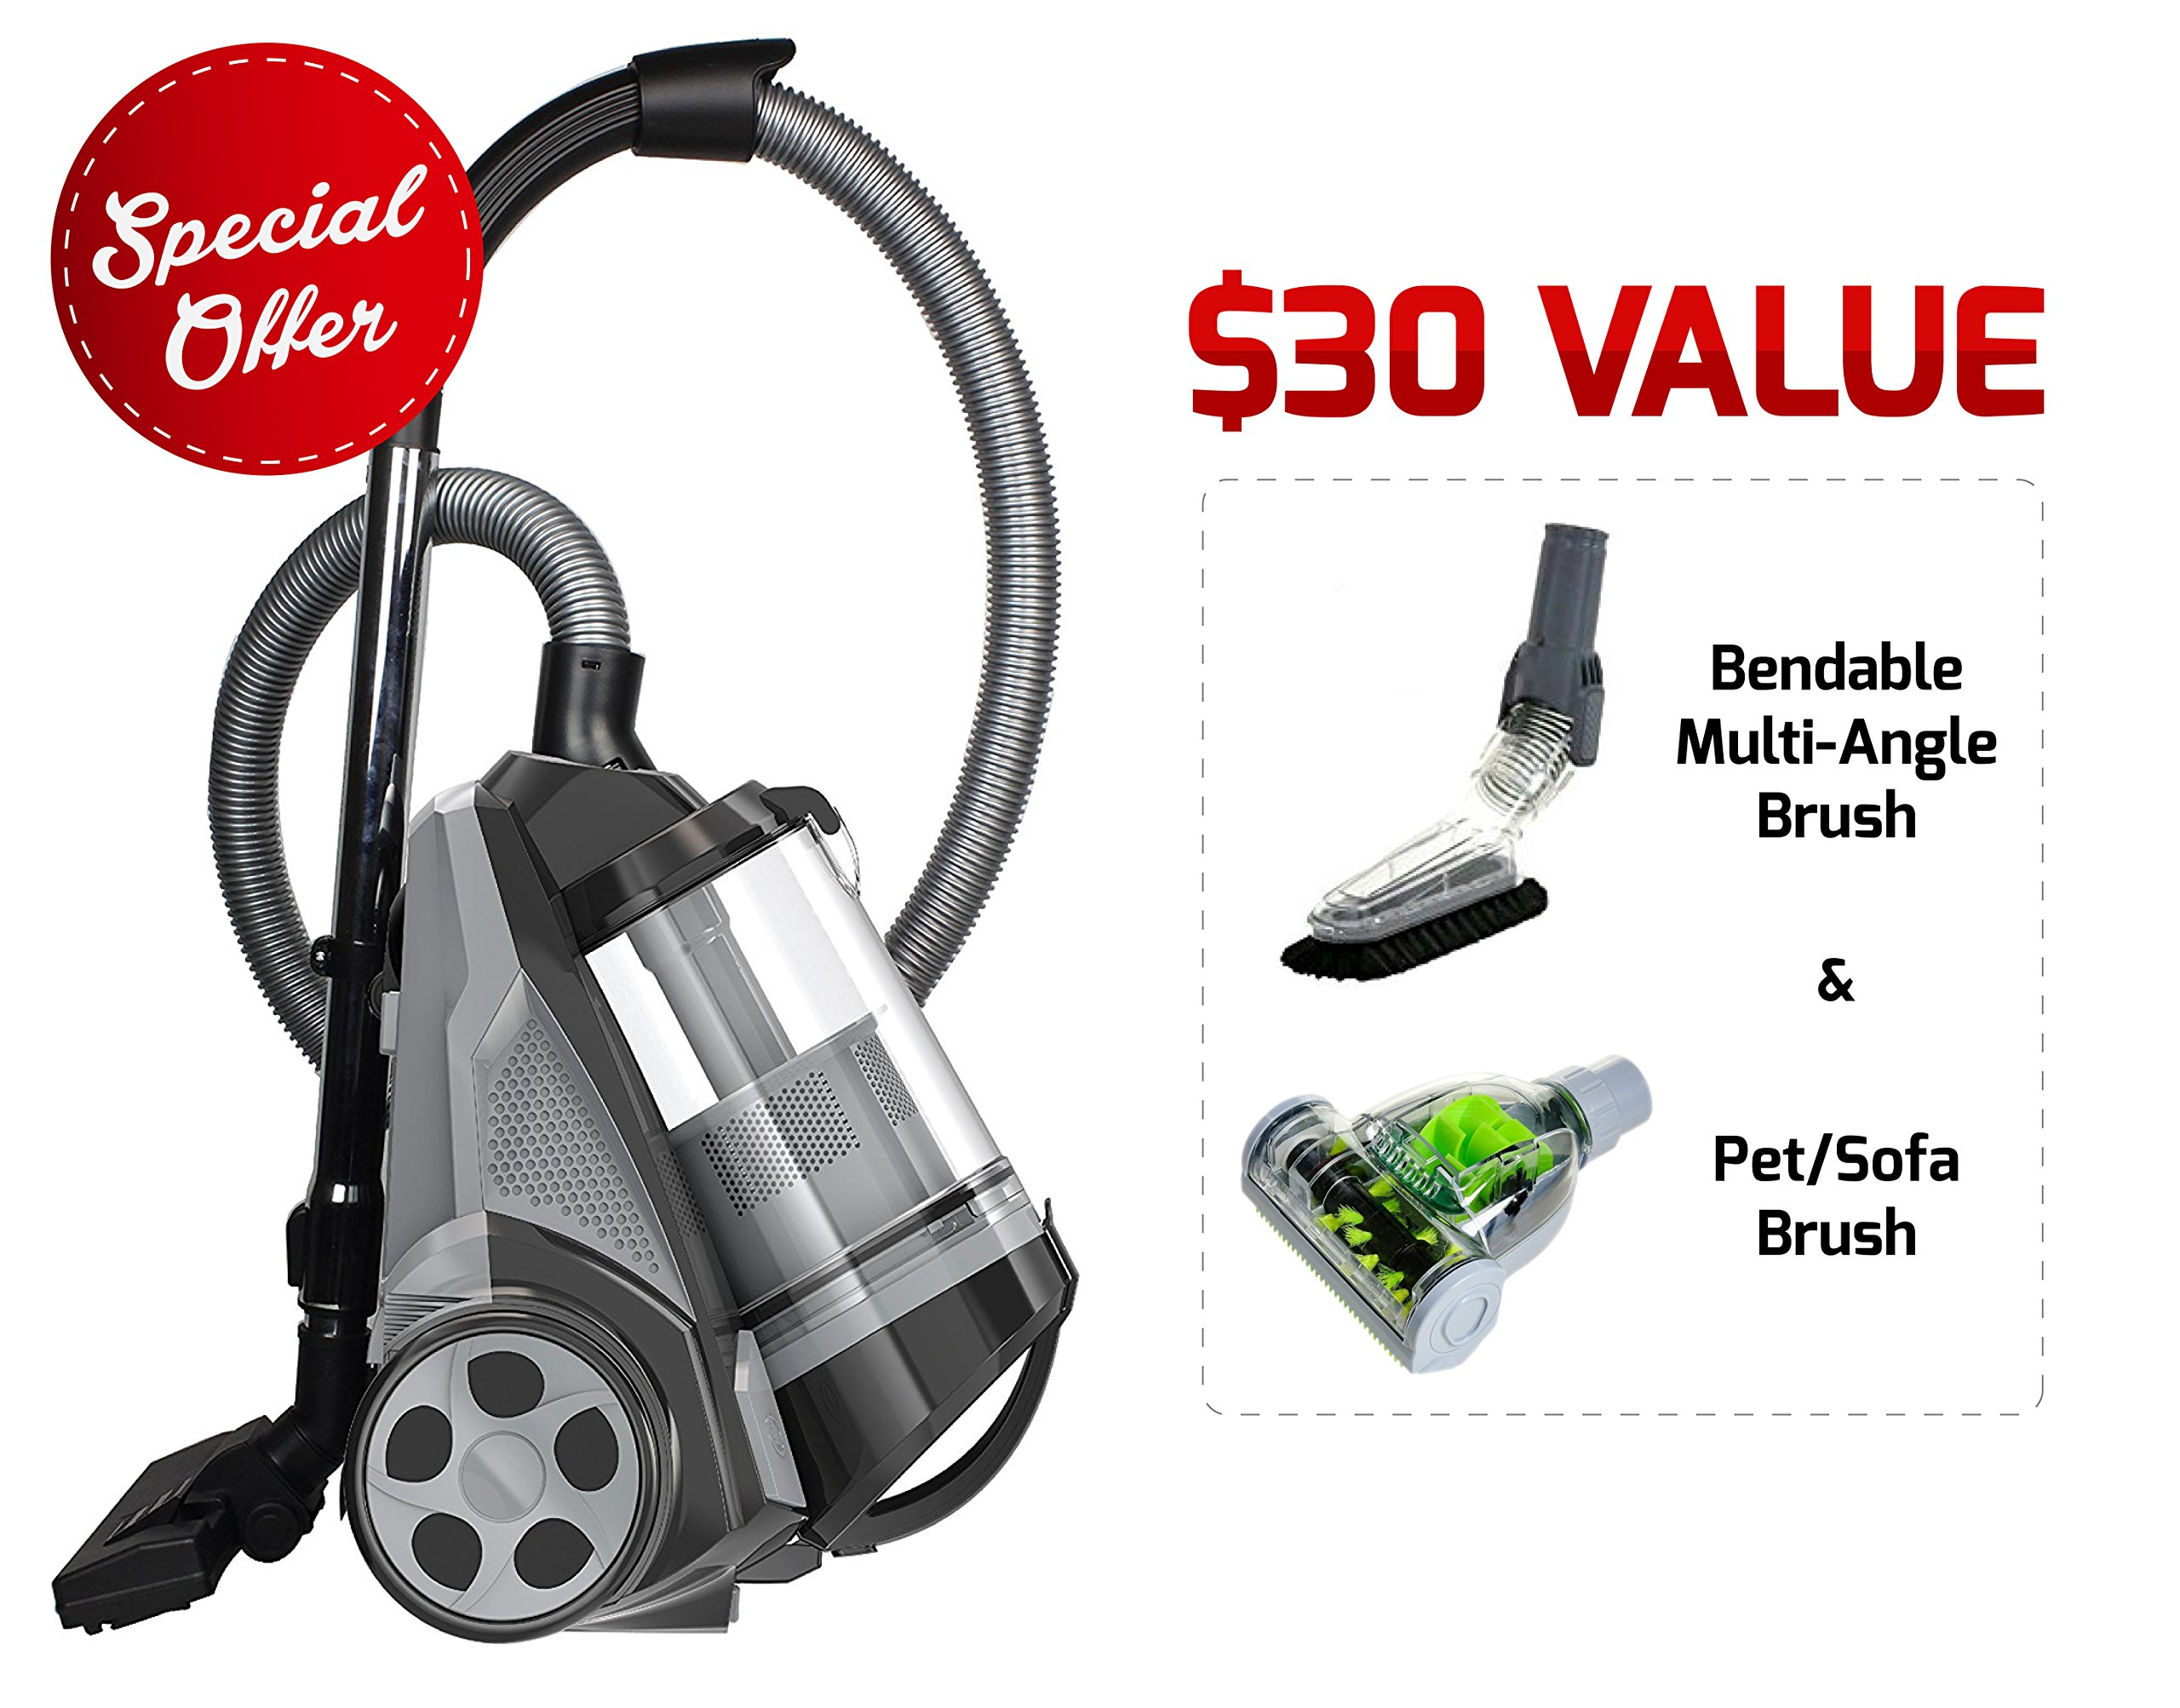 Ovente ST2620B Bagless Canister Cyclonic Vacuum - HEPA Filter - Includes Pet/Sofa, Bendable Multi-Angle, Crevice Nozzle/Bristle Brush, Retractable Cord - Featherlite, Black by Ovente